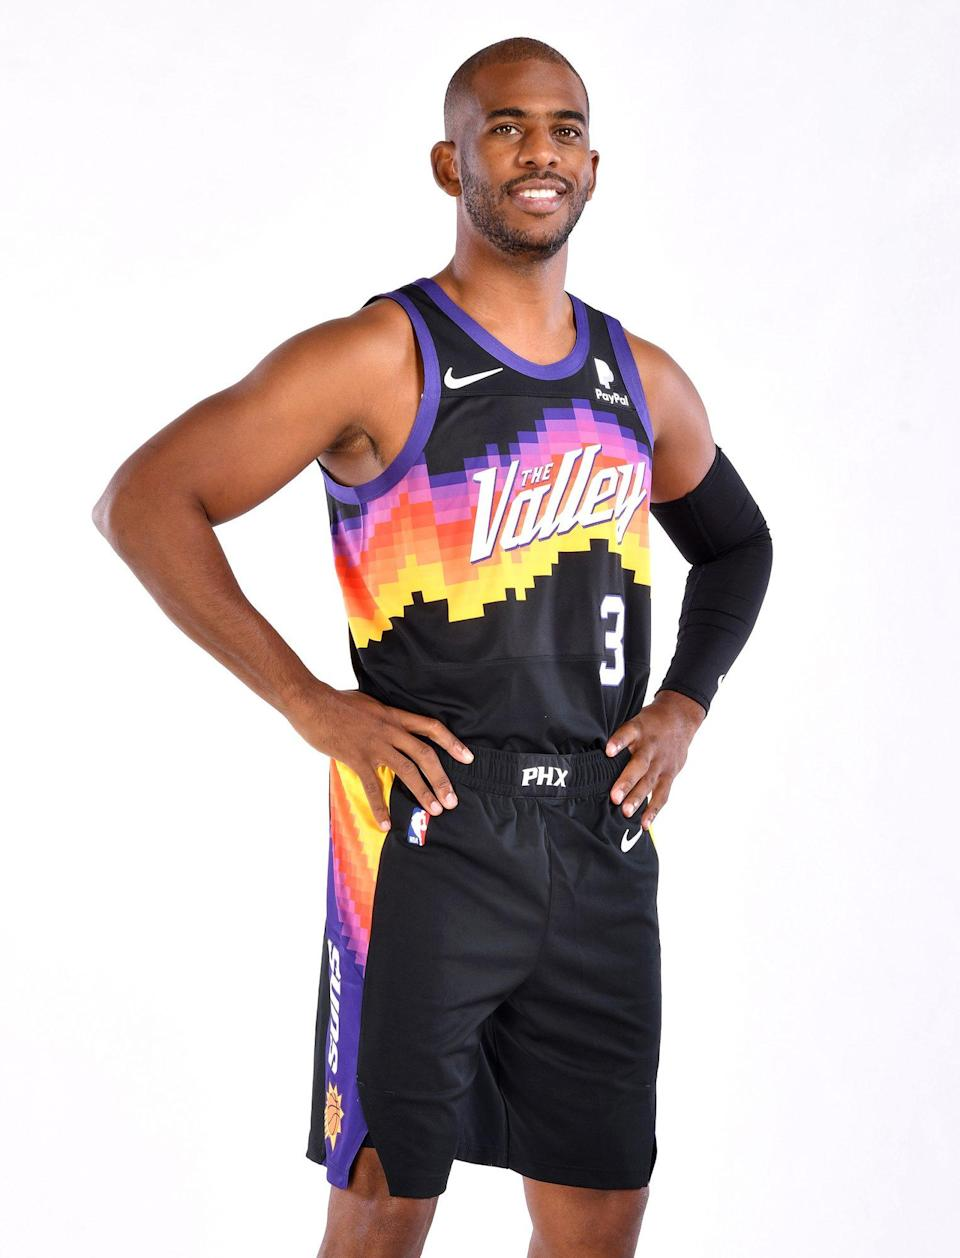 <p>Phoenix Suns guard Paul was selected by James in his third pick of the second round.</p>